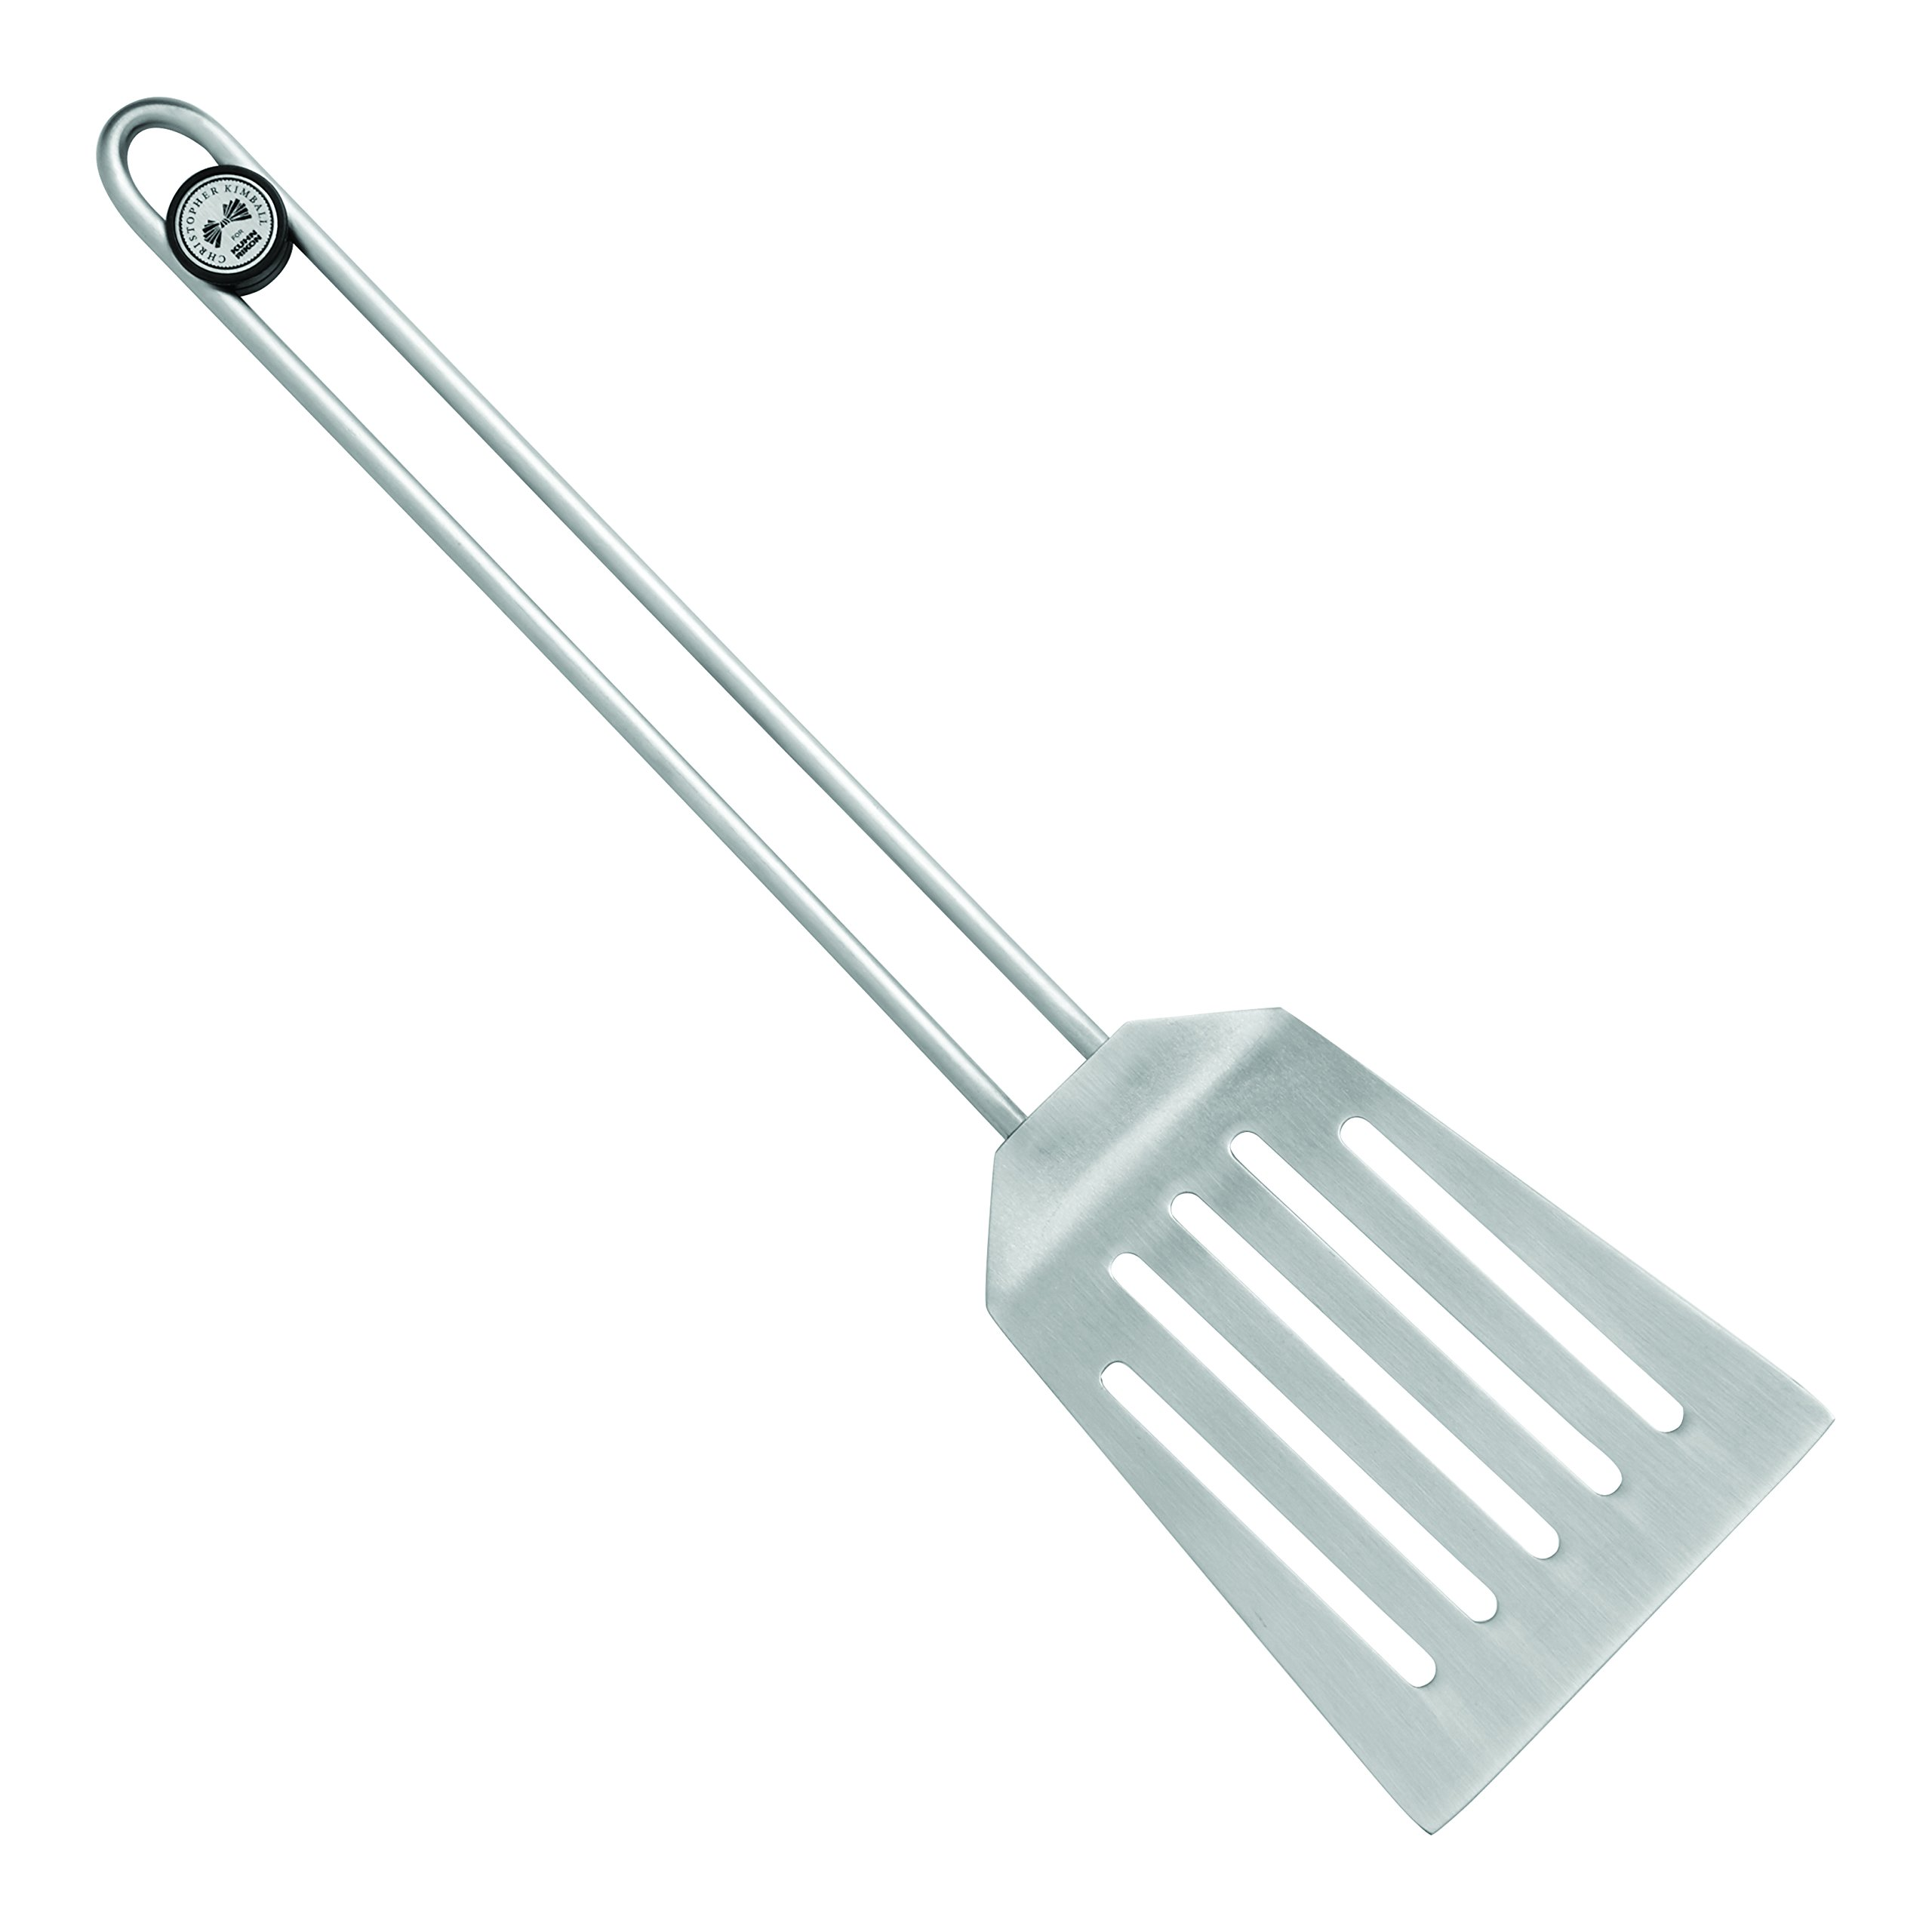 Christopher Kimball Thin Edge Spatula, 24055 by Kuhn Rikon